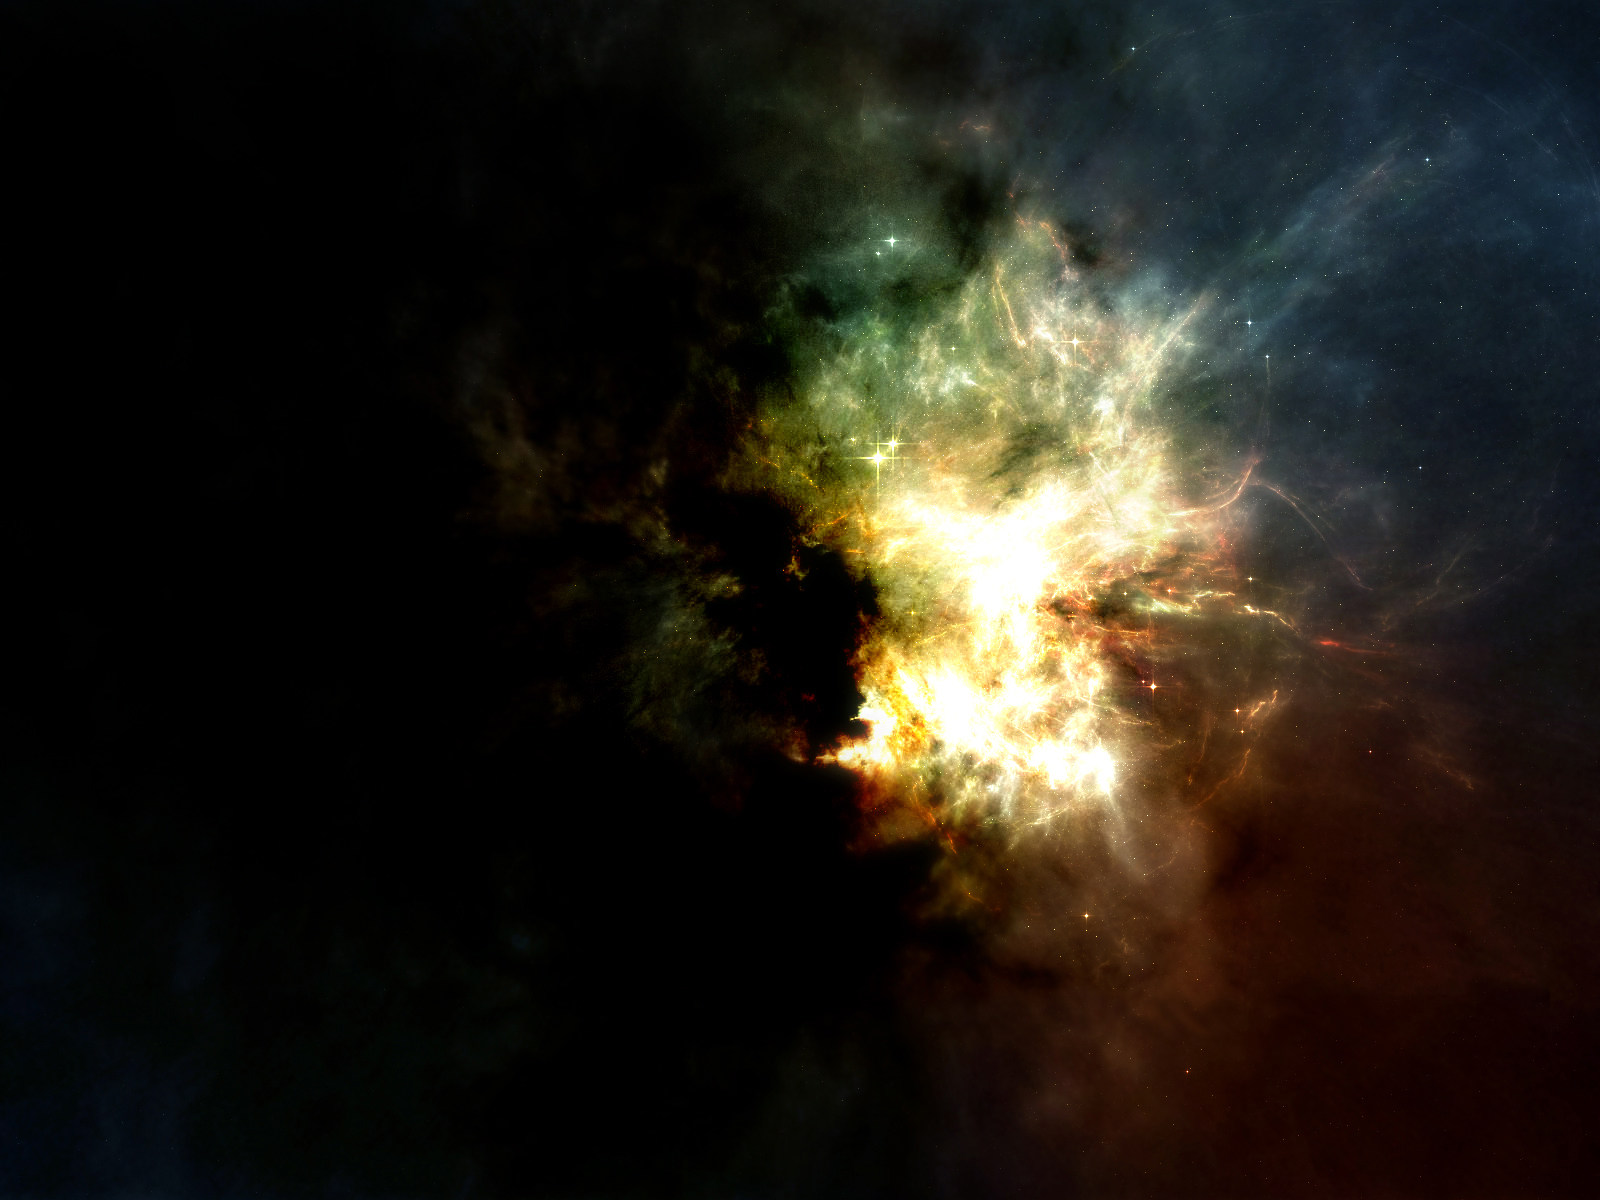 wallpapers-room_com___apophysis_nebula_by_redxen_1600x1200